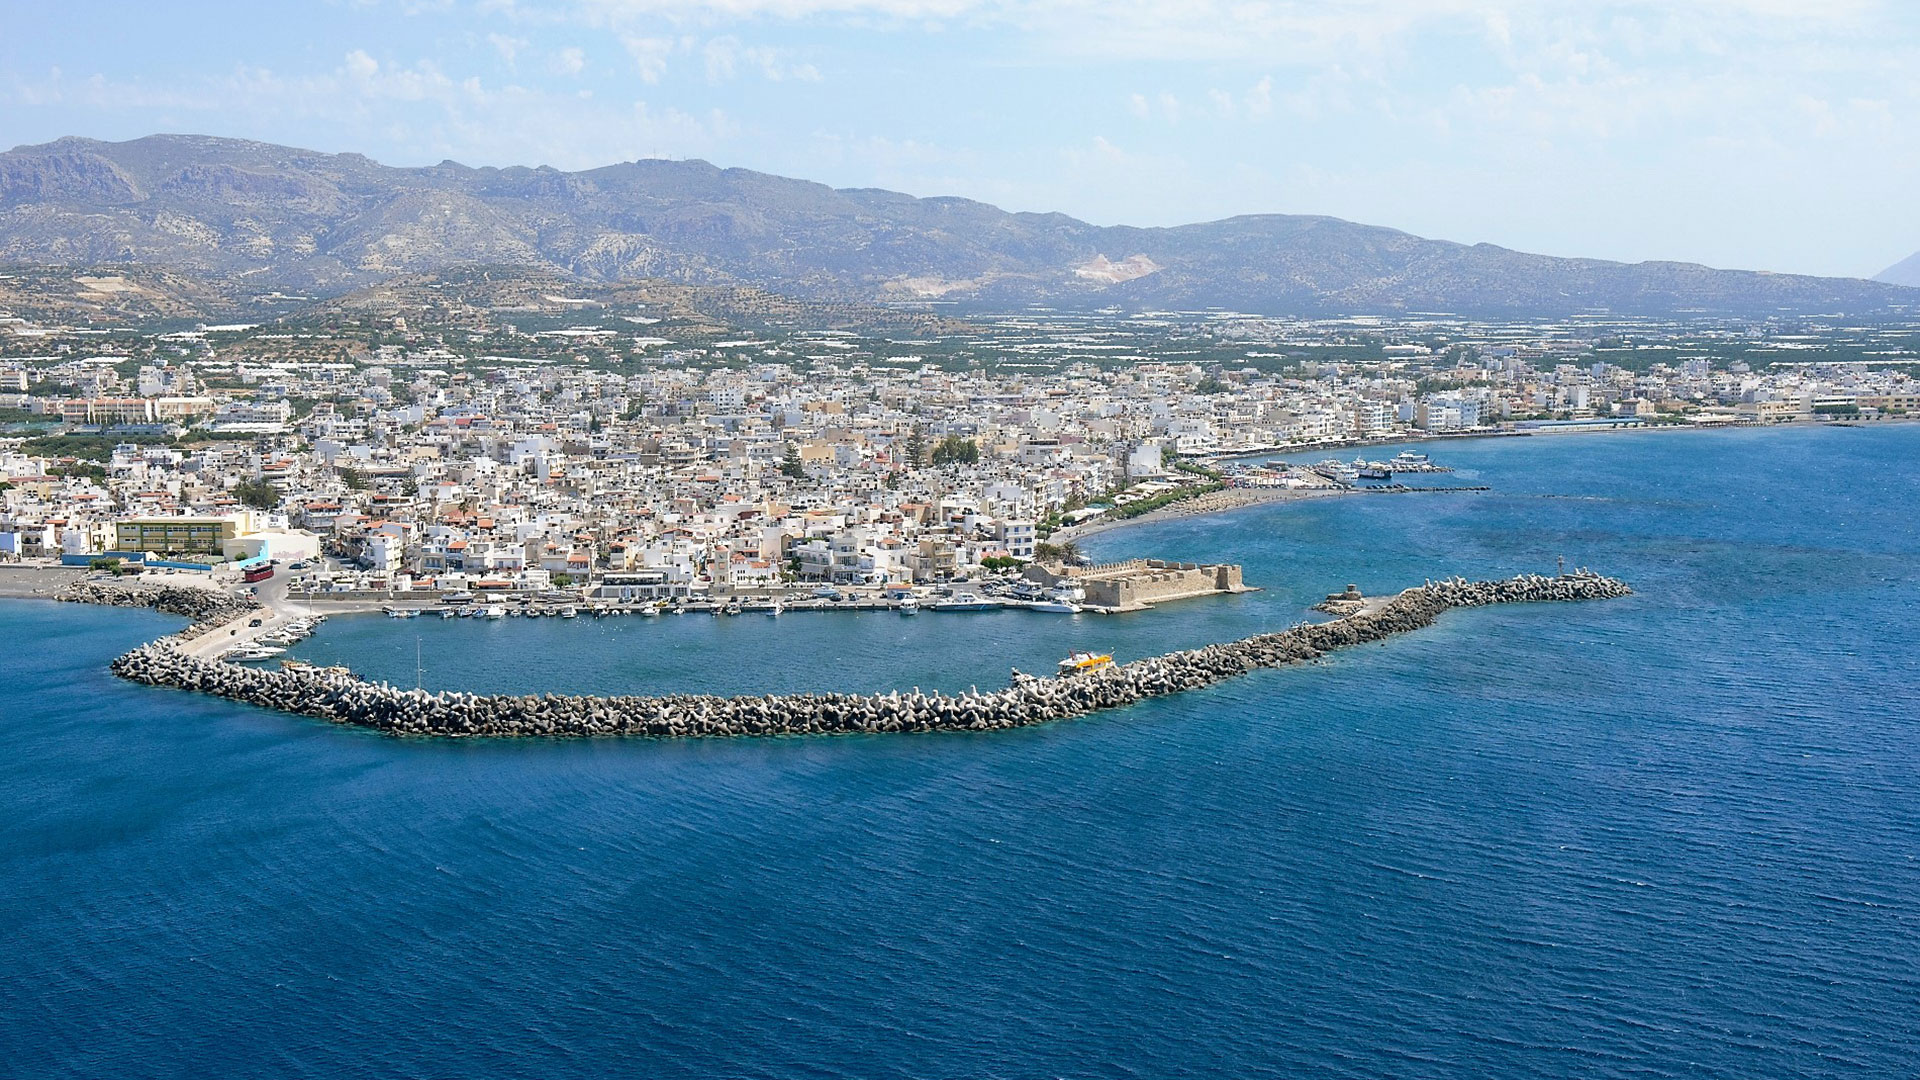 Ierapetra – Chrissi Island-Kales Fortress Ierapetra-Minoan town of Gournia